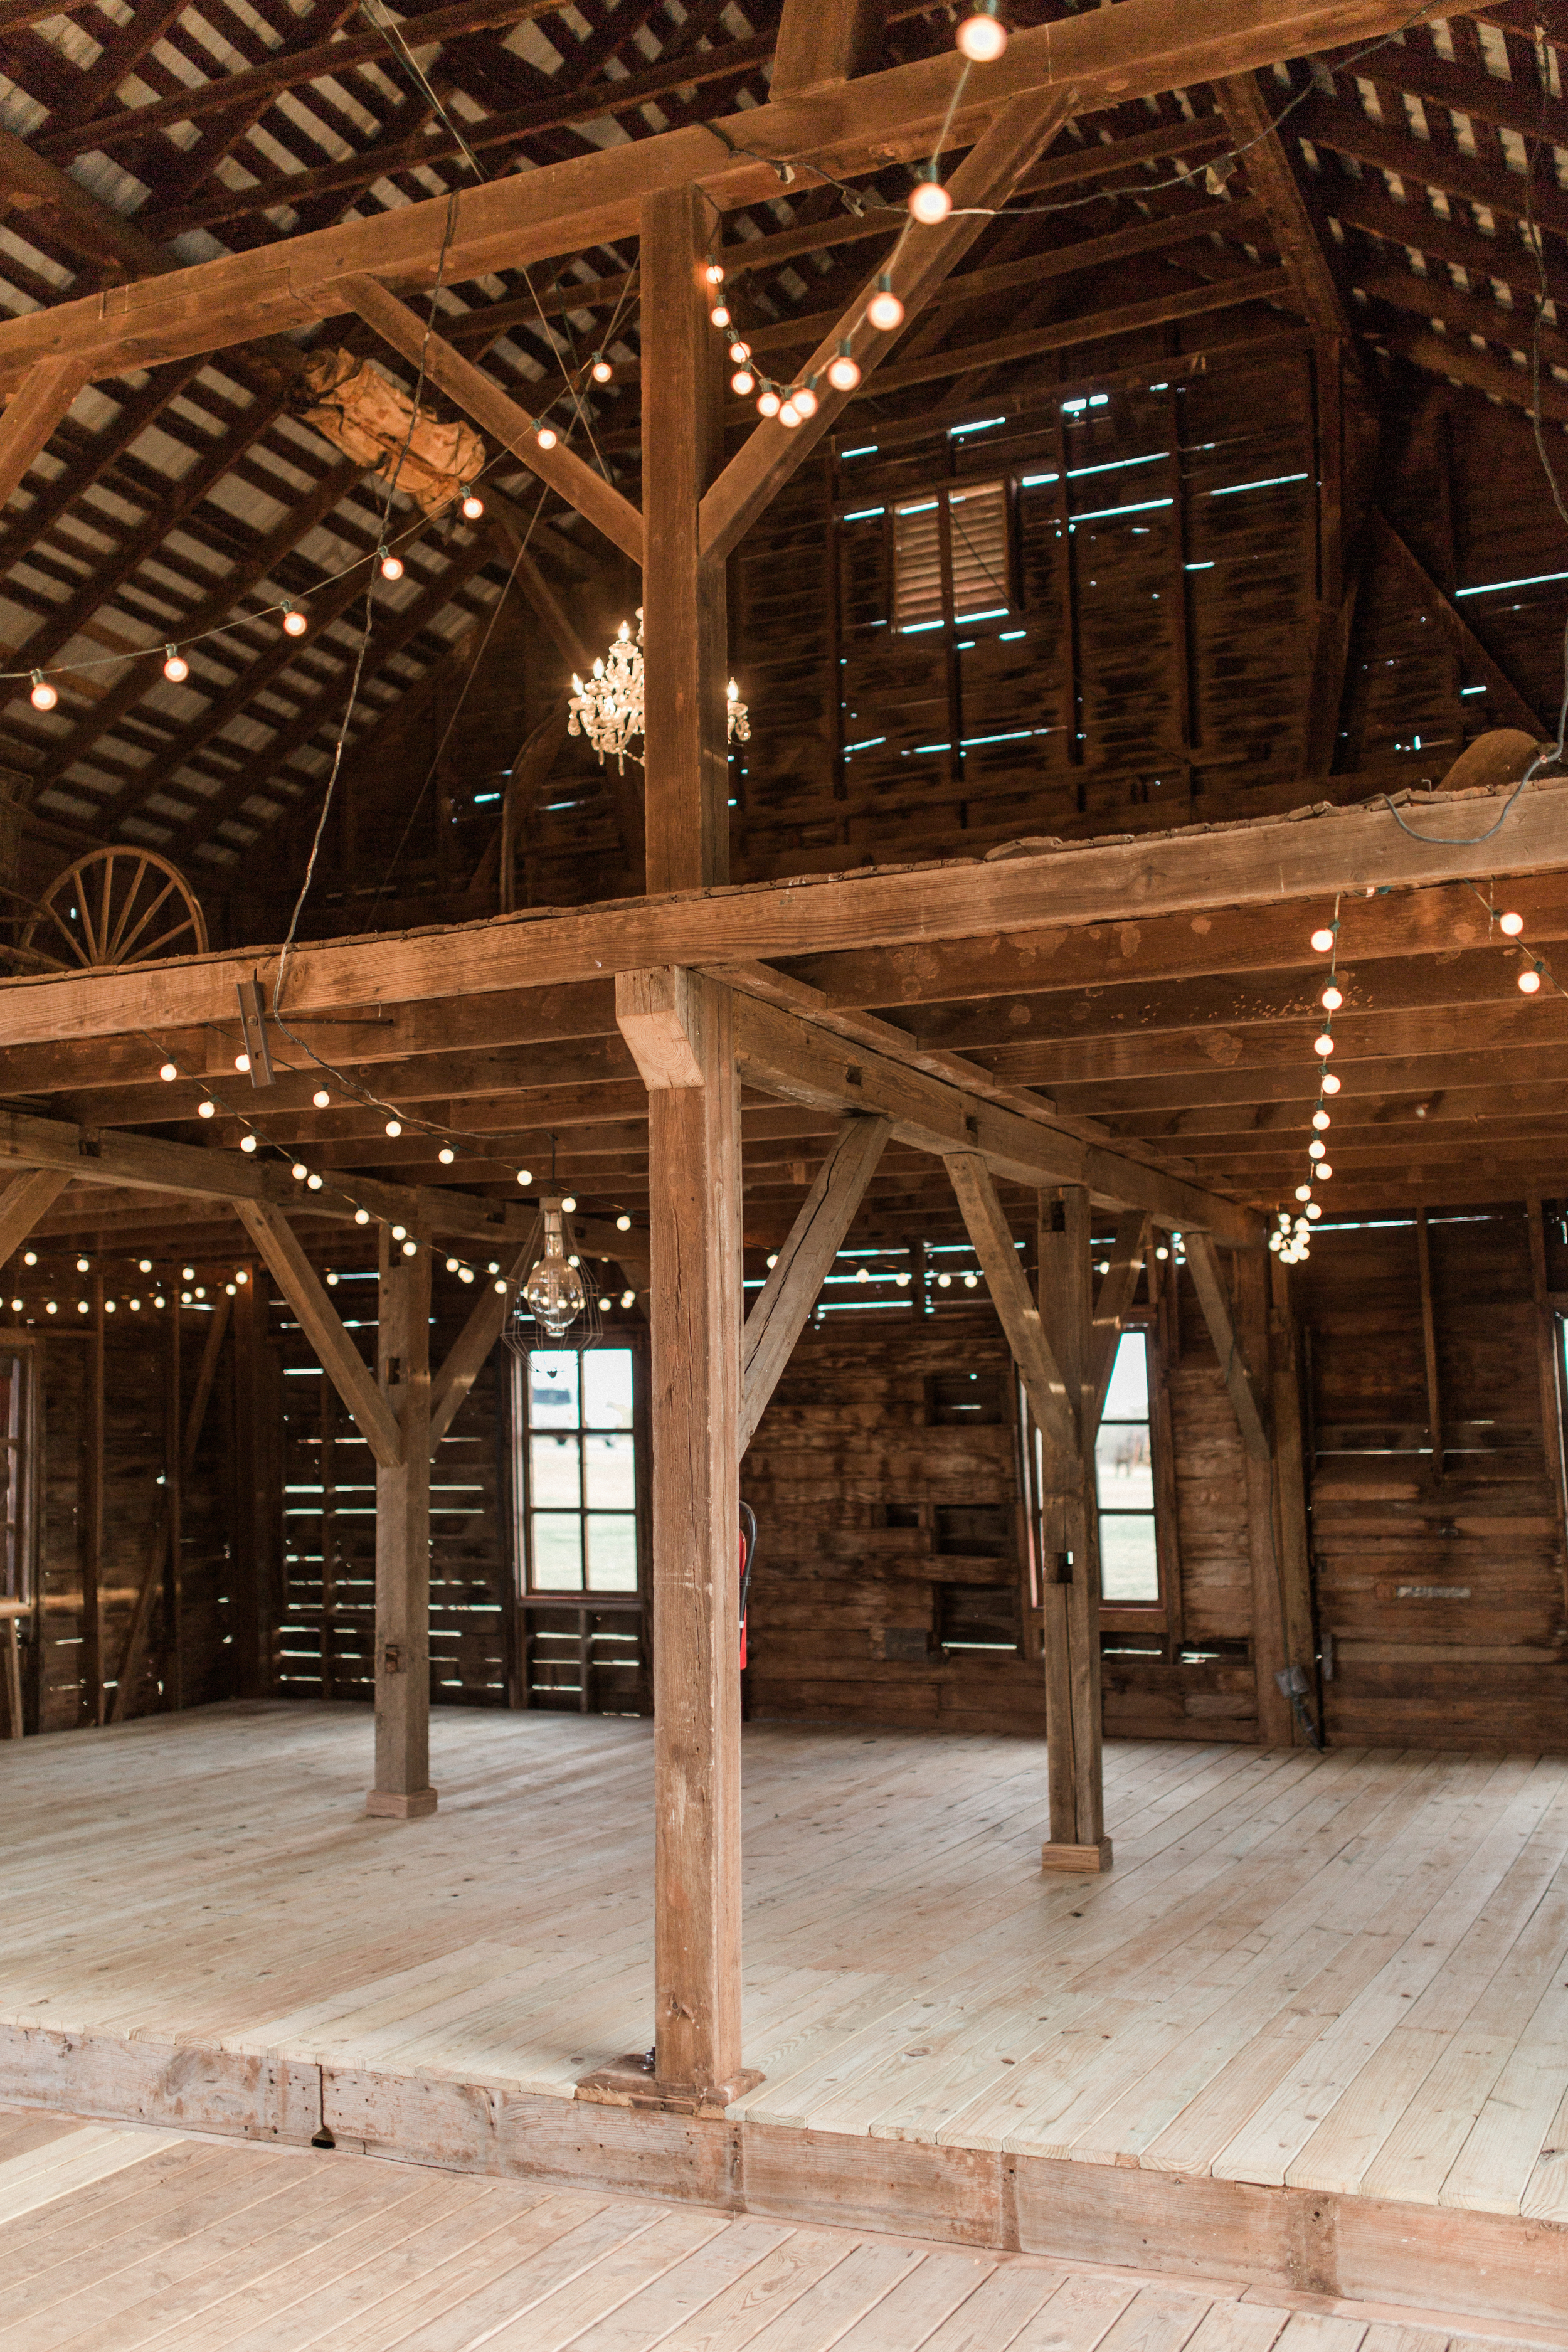 "With two of our rooms' walls knocked down, even more square feet have been added for your event! If you're familiar with the large chandelier in the middle of the barn, we installed a ""sister"" chandelier and even more bulb lights to make your event truly sparkle!"